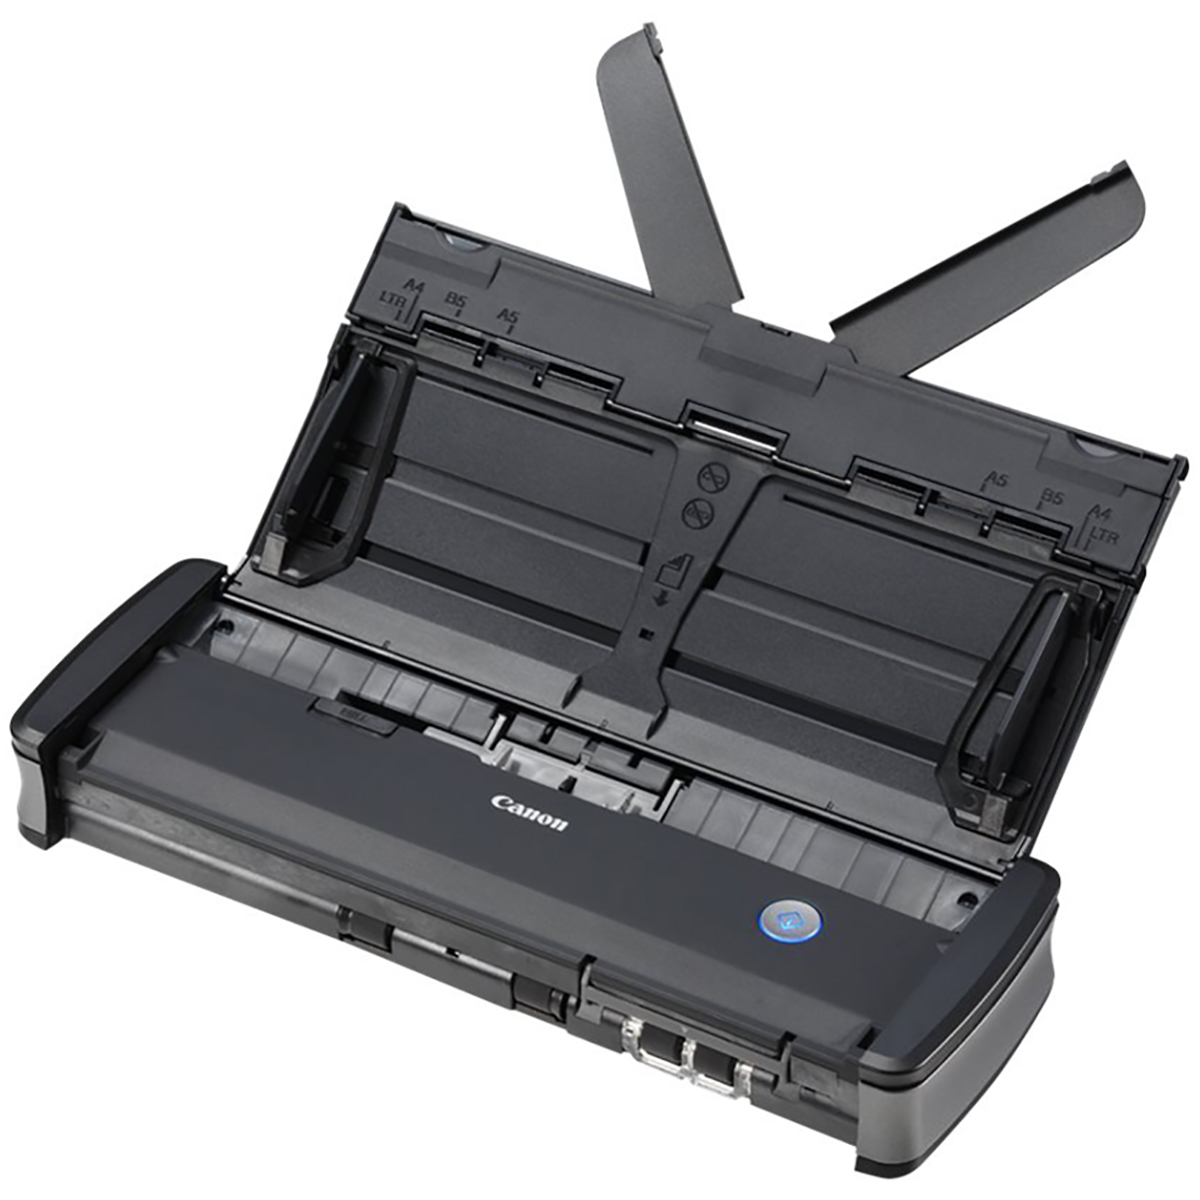 Canon P-215II A4 Personal Document Scanner